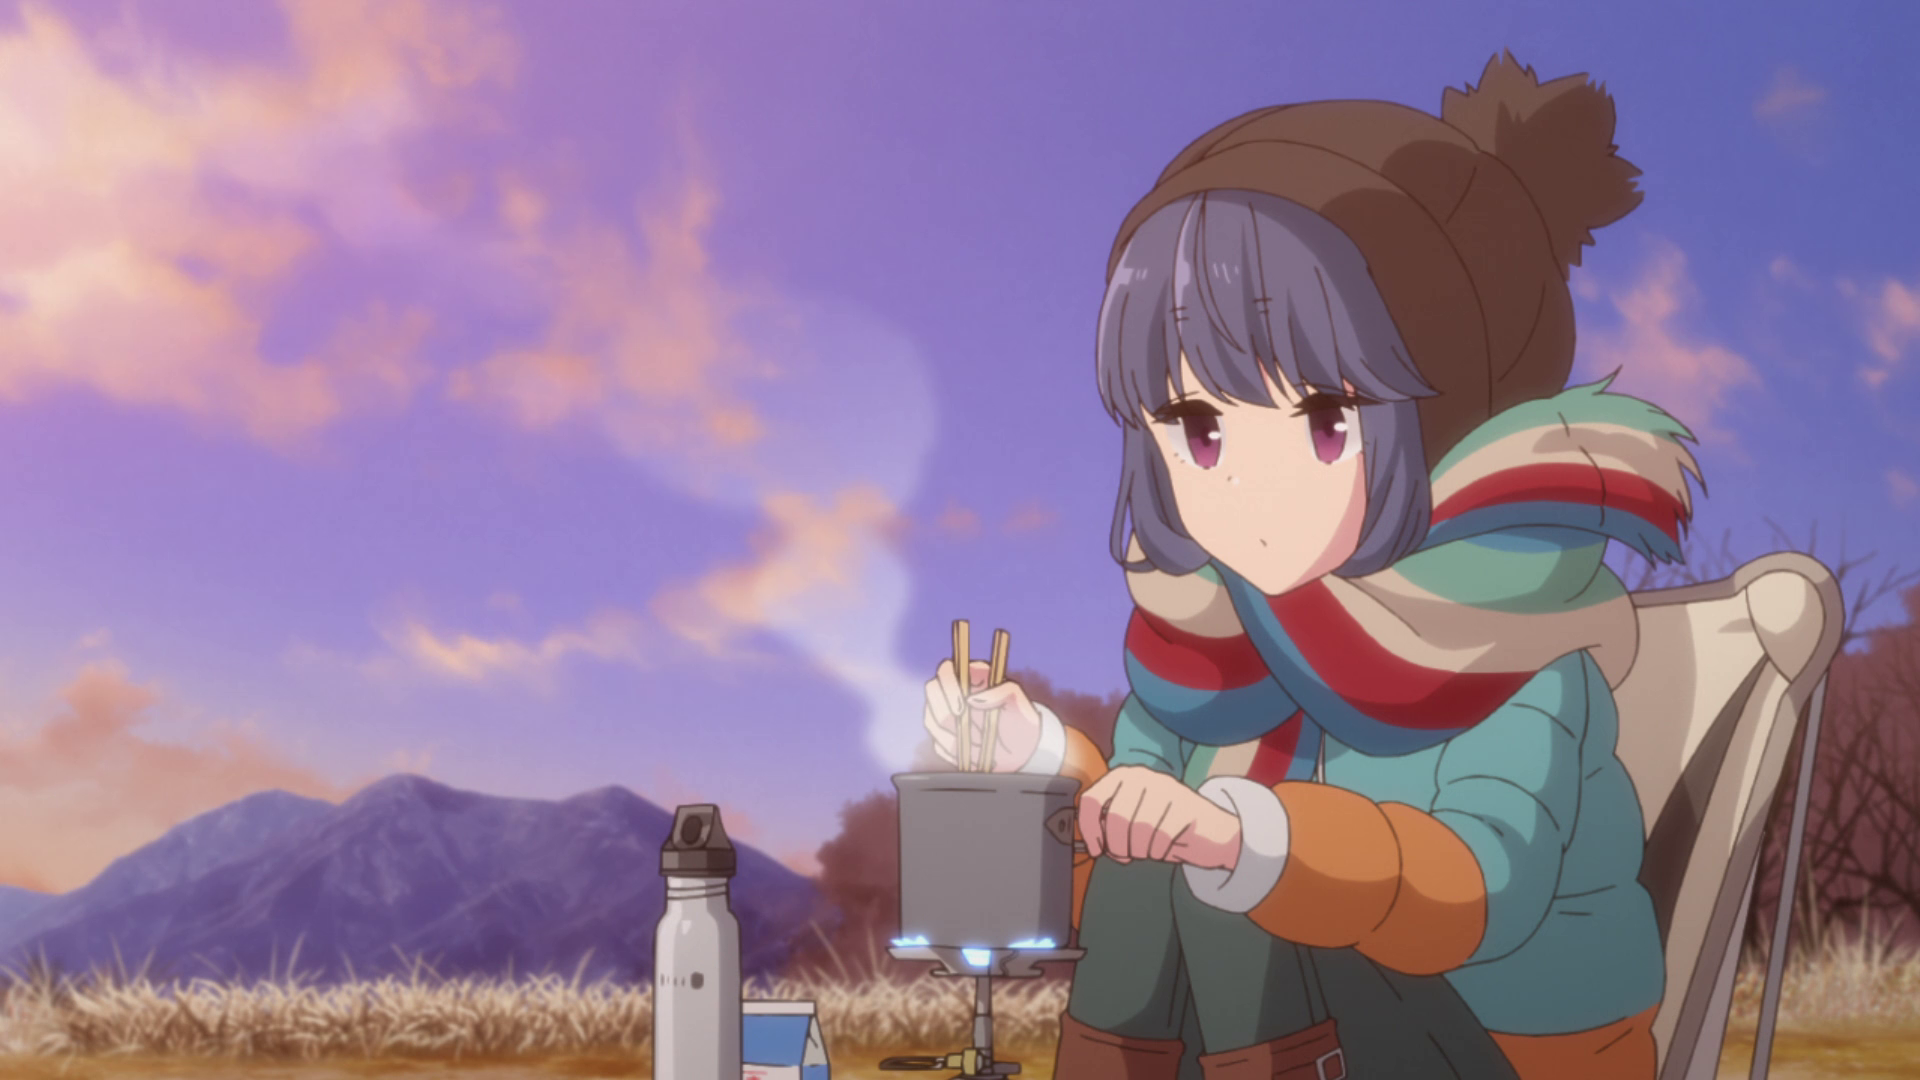 Yamanashi Is on Show in Two New Laid-Back Camp Season 2 TV Anime Visuals